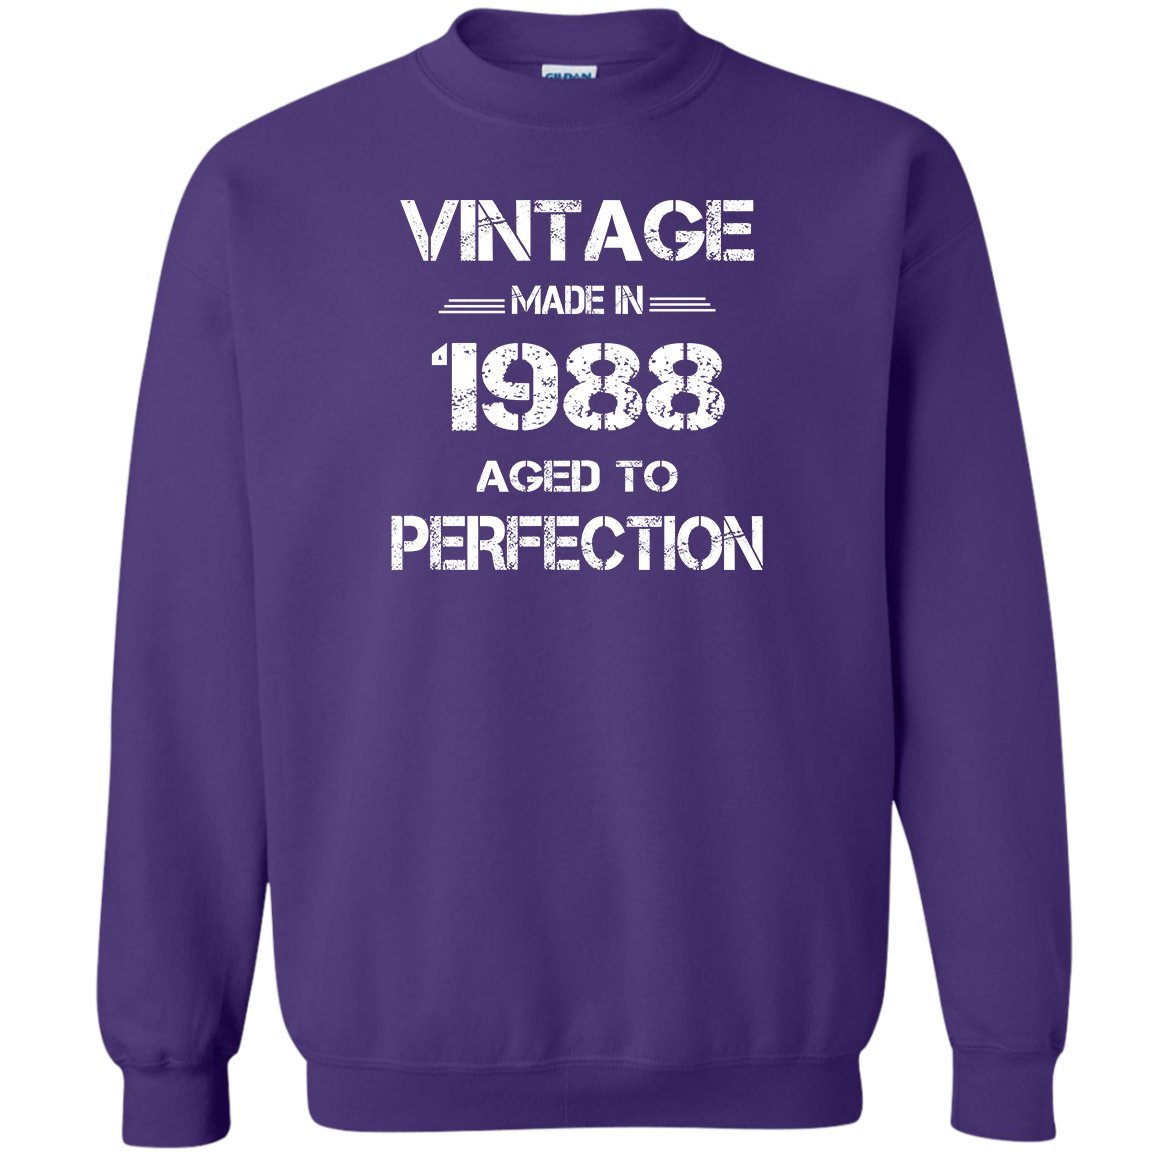 1988 Vintage Sweatshirt Vintage Made In 1988 Aged To Perfect Shirt